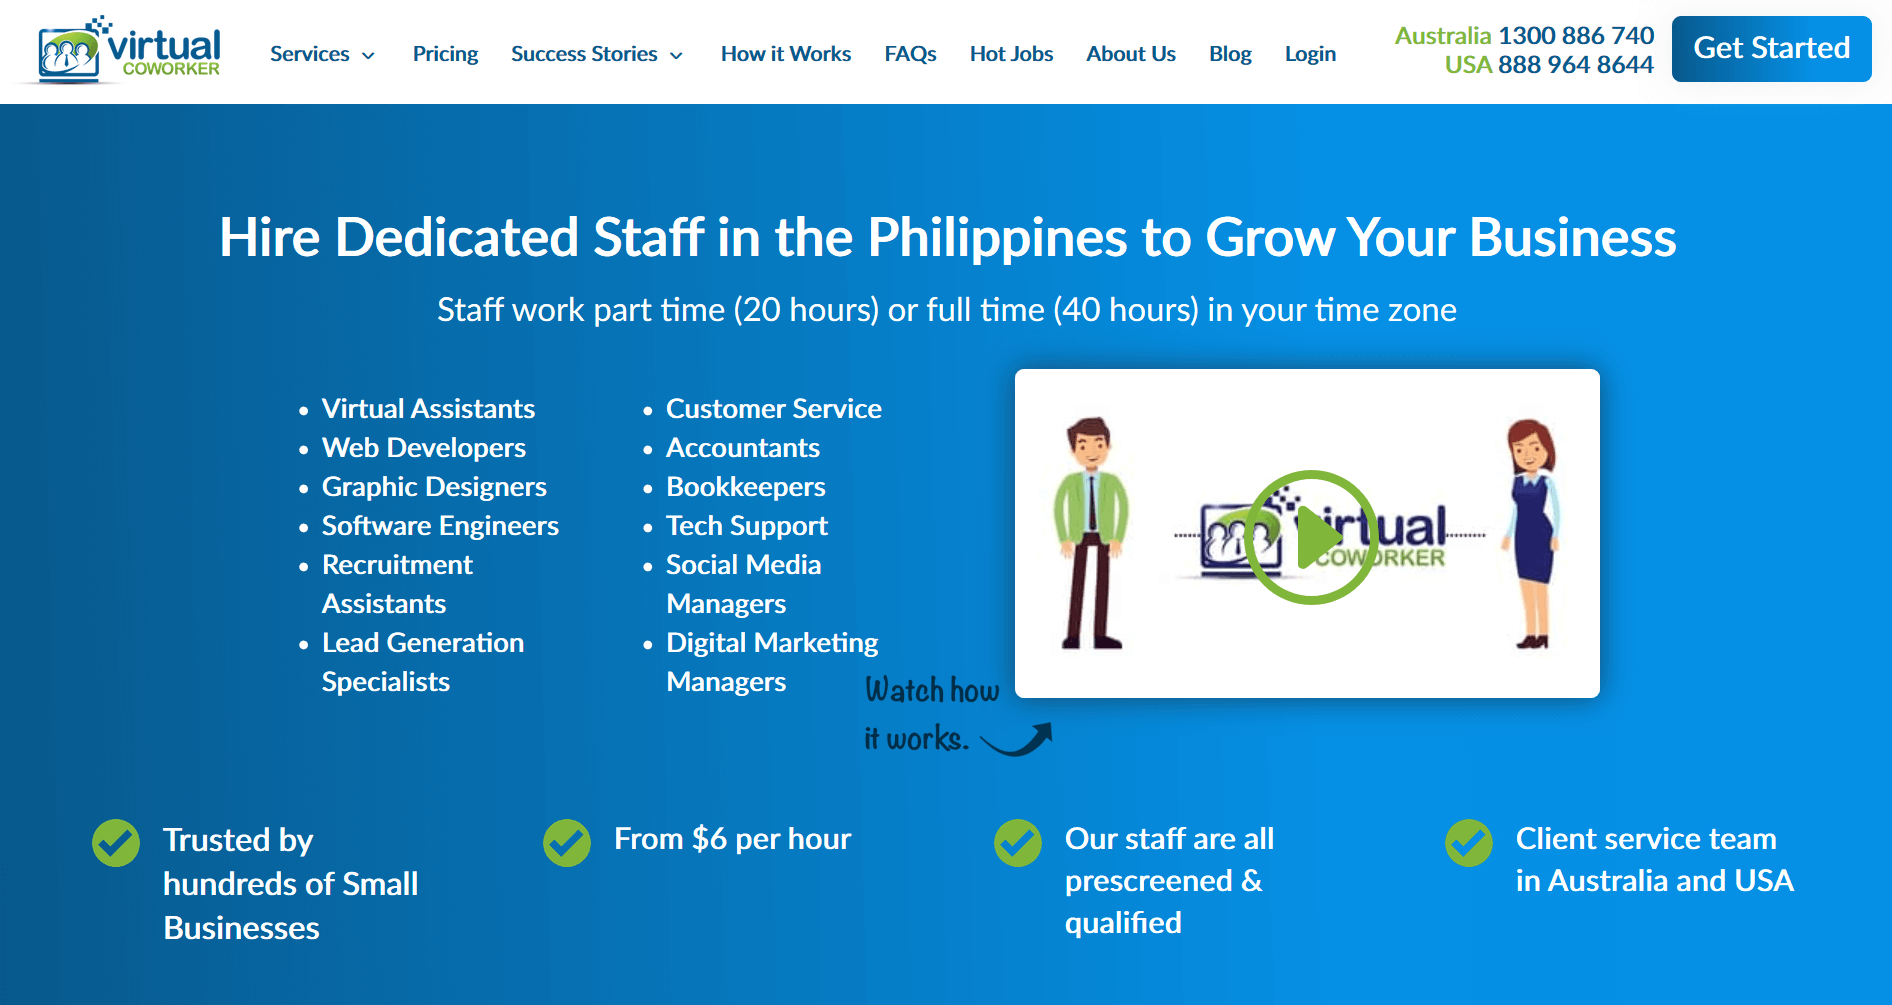 9 Awesome Virtual Assistant Companies in the Philippines to